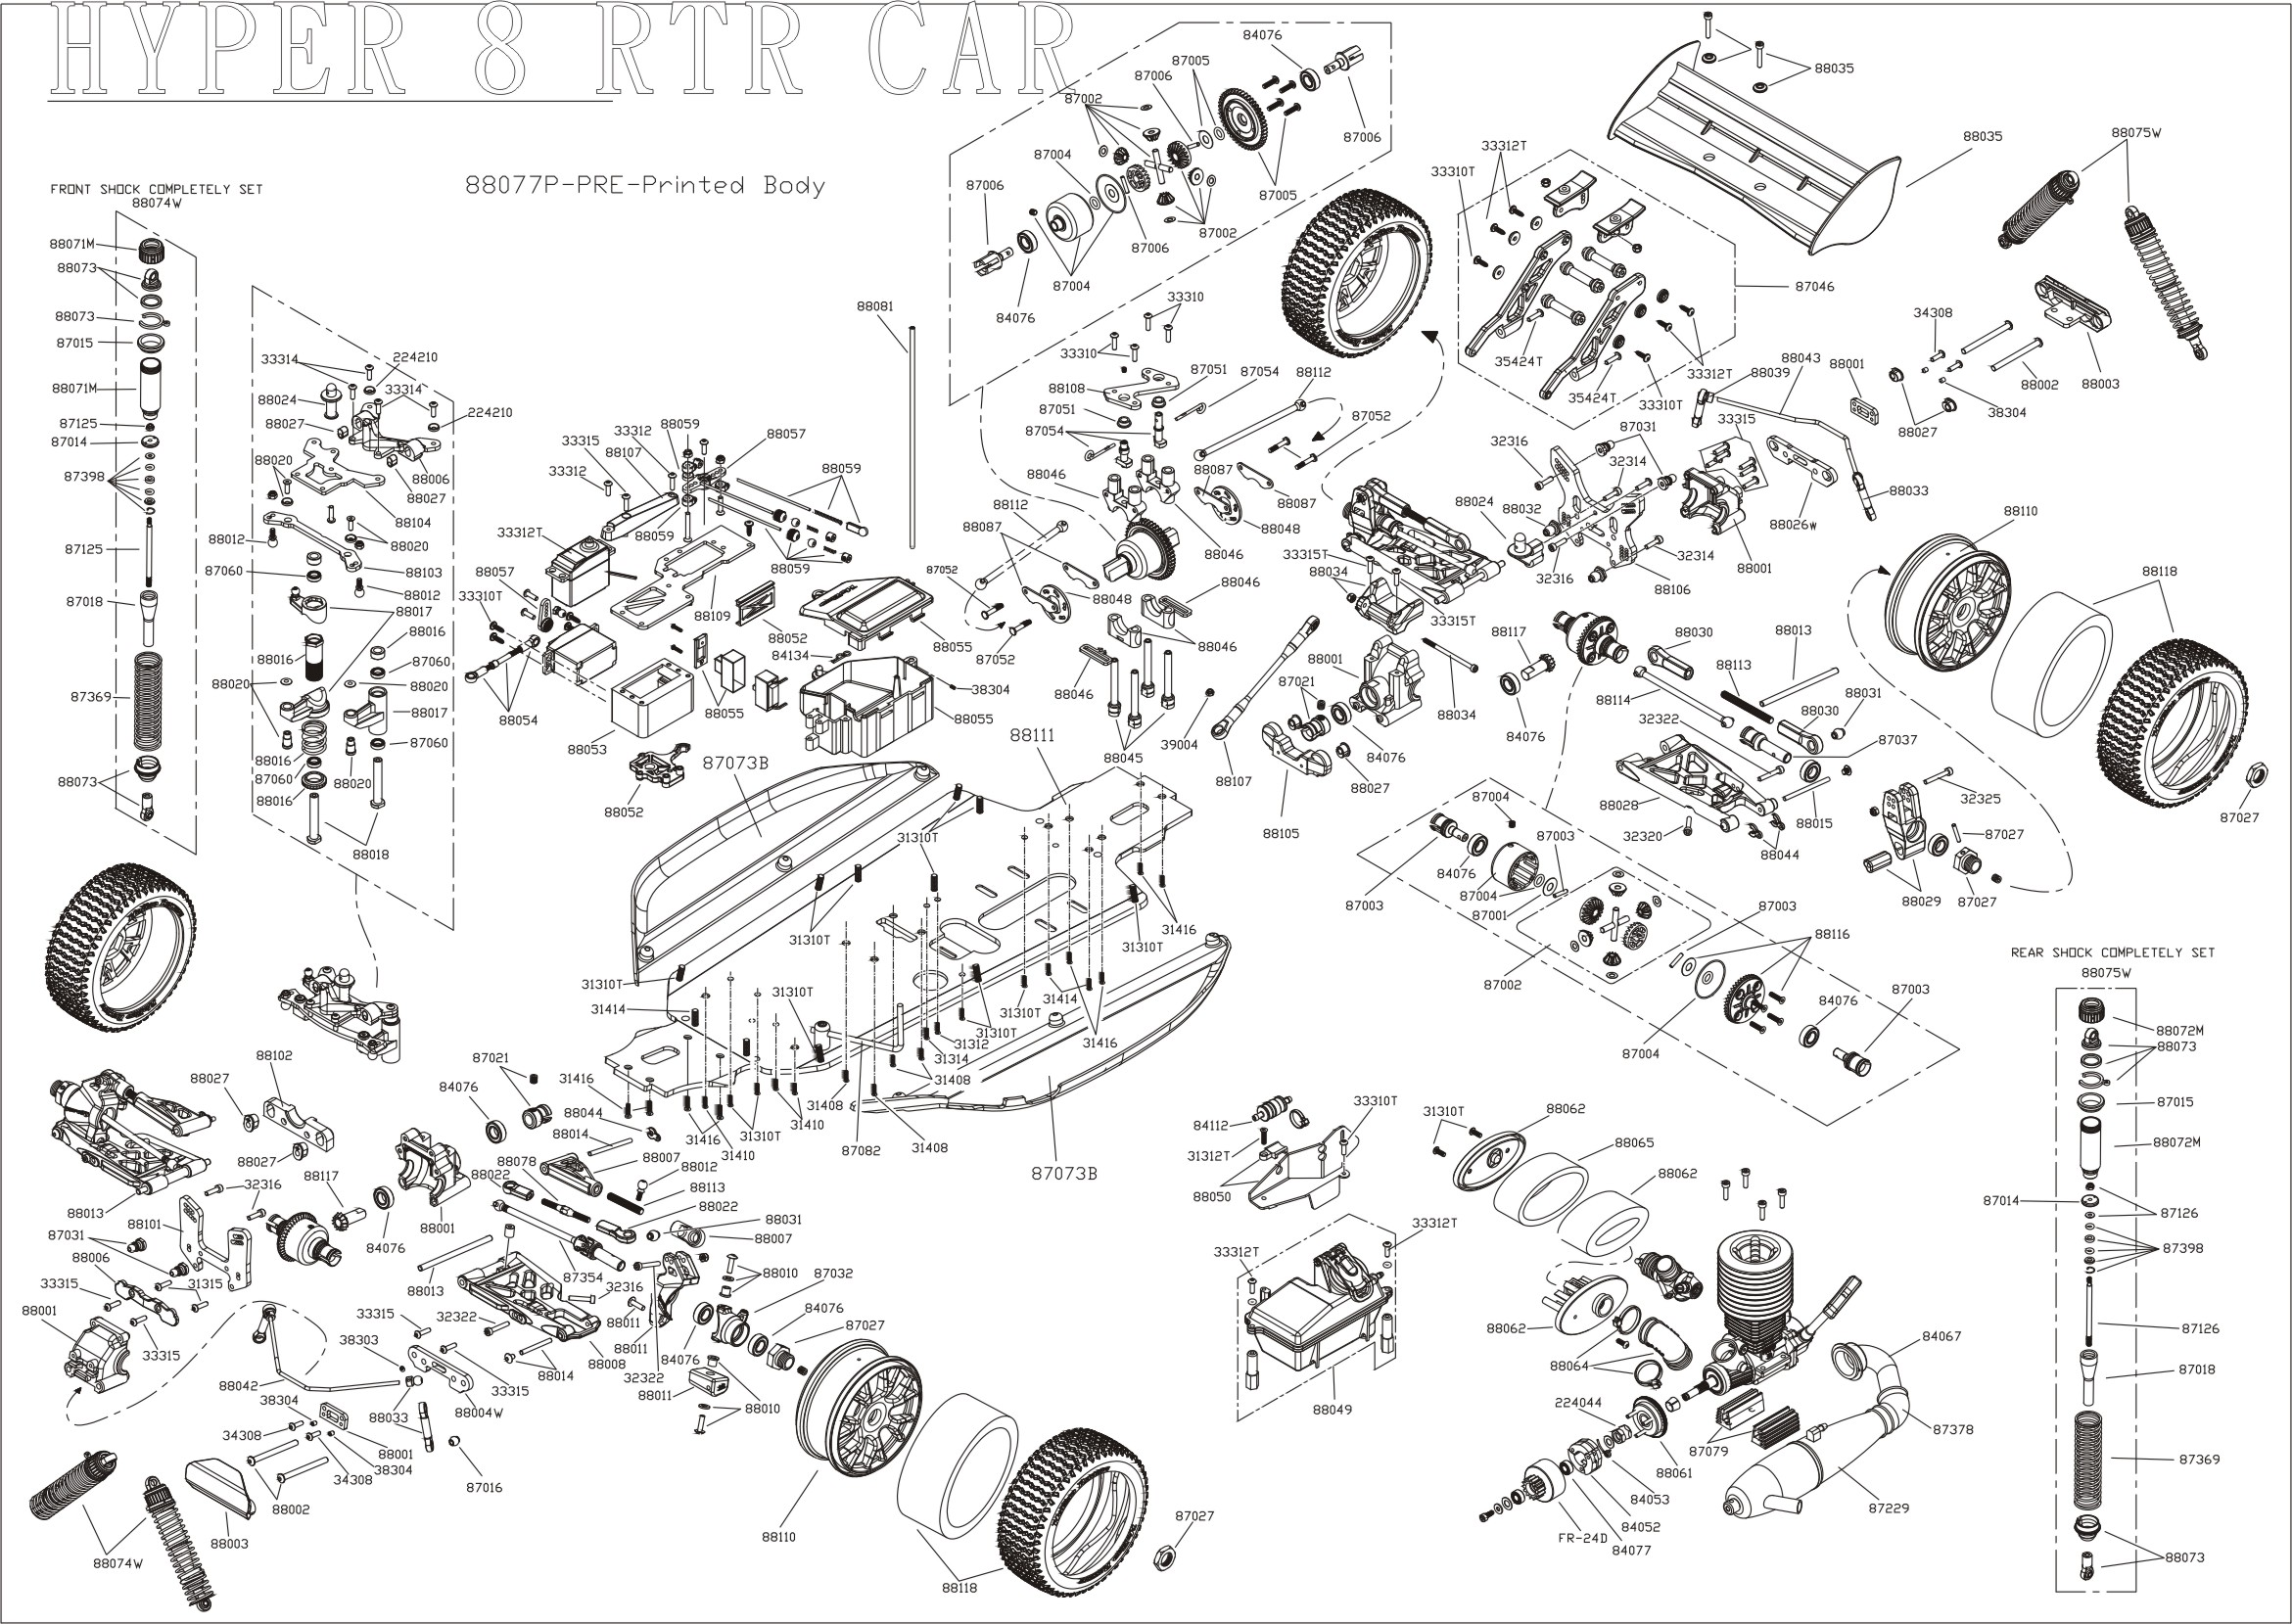 parts explosion diagram harley davidson tachometer wiring dougalwalker just another wordpress site page 2